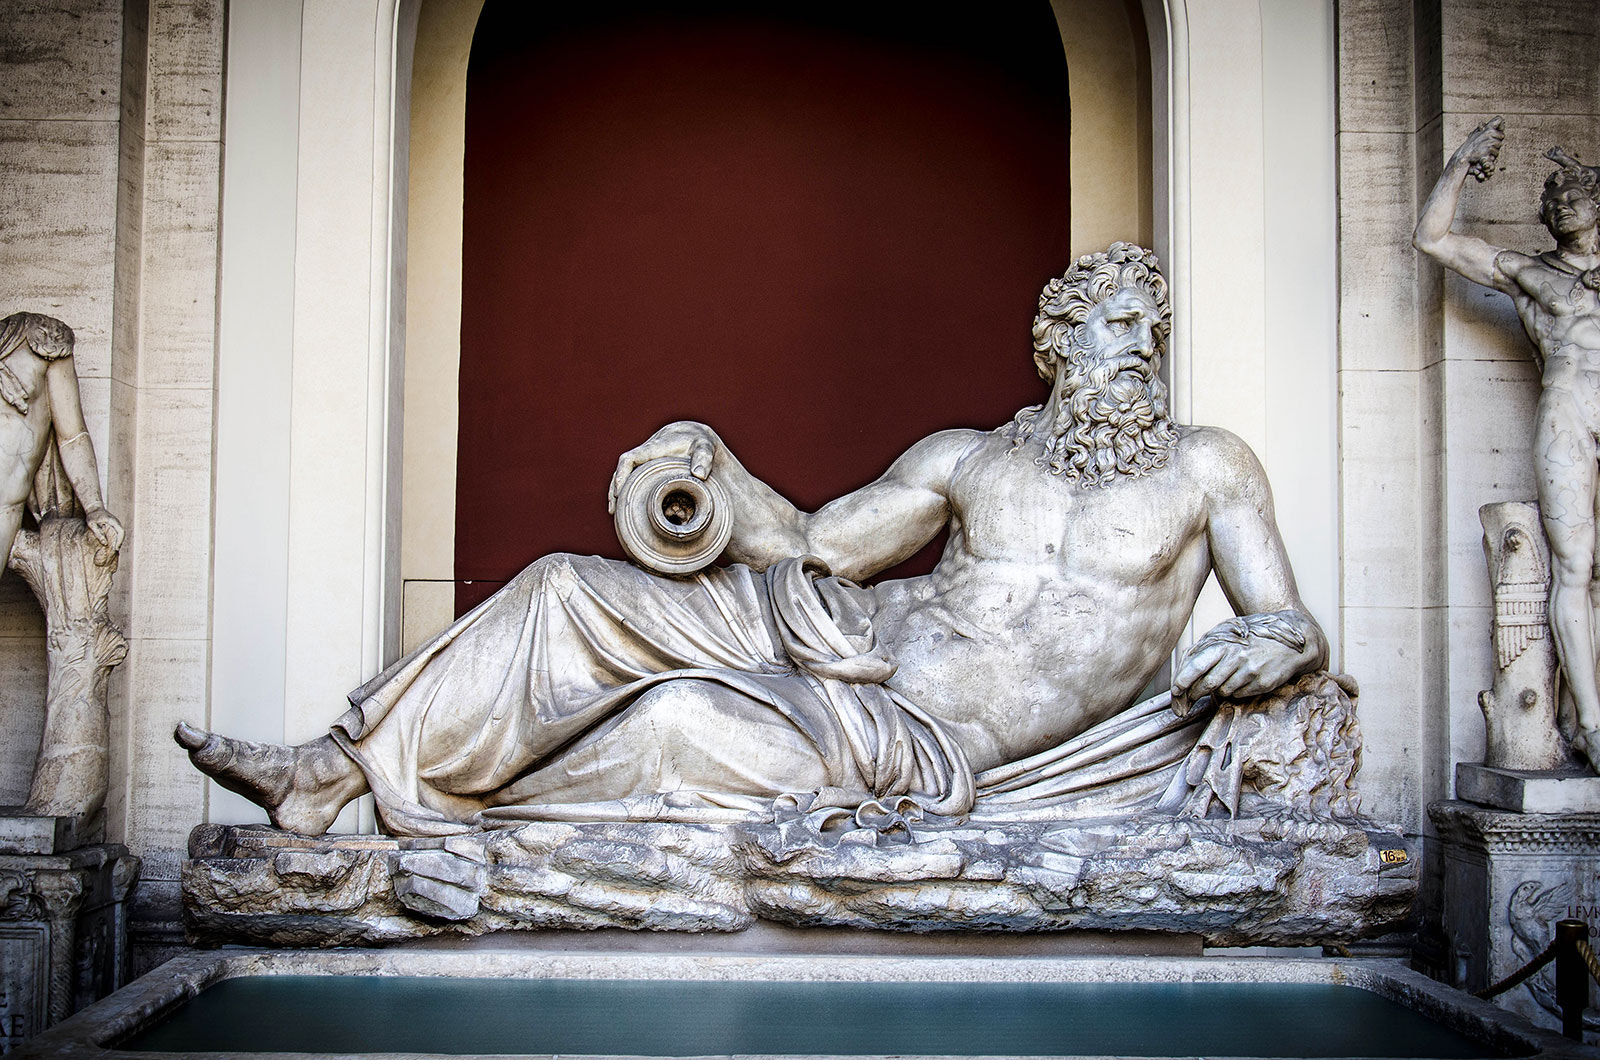 Photograph Statue in the Vatican Museum by Chris G on 500px